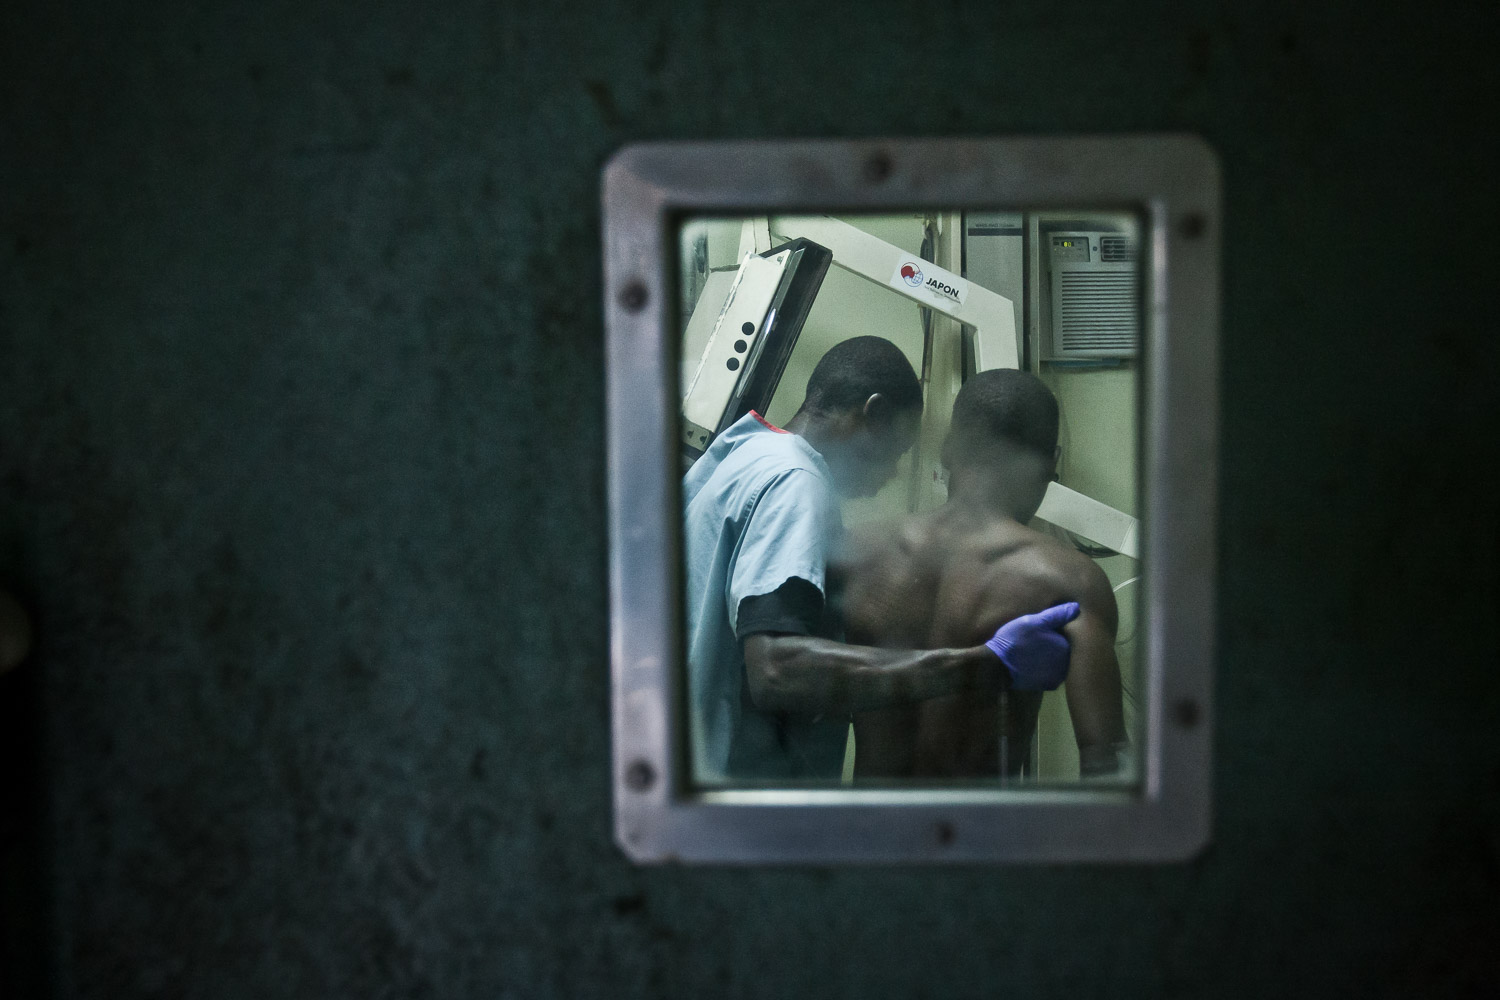 Port-au-Prince. A man with chest injuries is being supported to stand for an x-ray examination of his lungs.